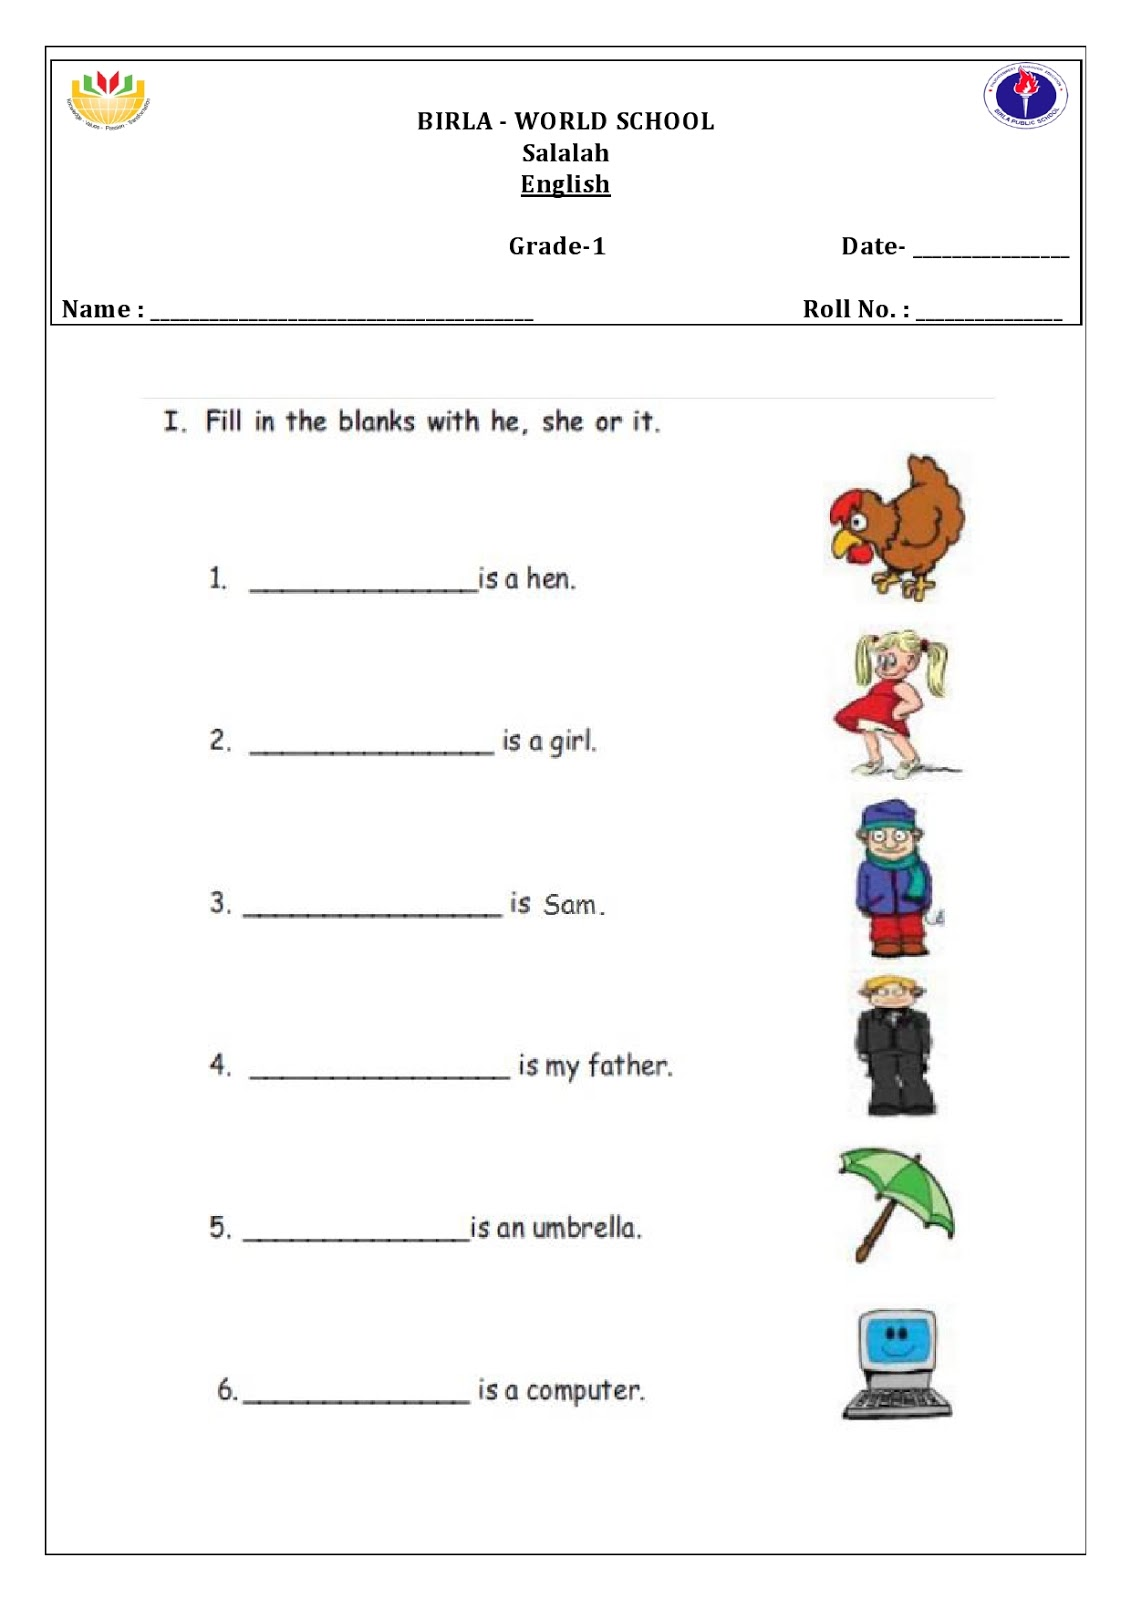 - Cbse English Worksheet For Class 1 - Rajasthan Board F